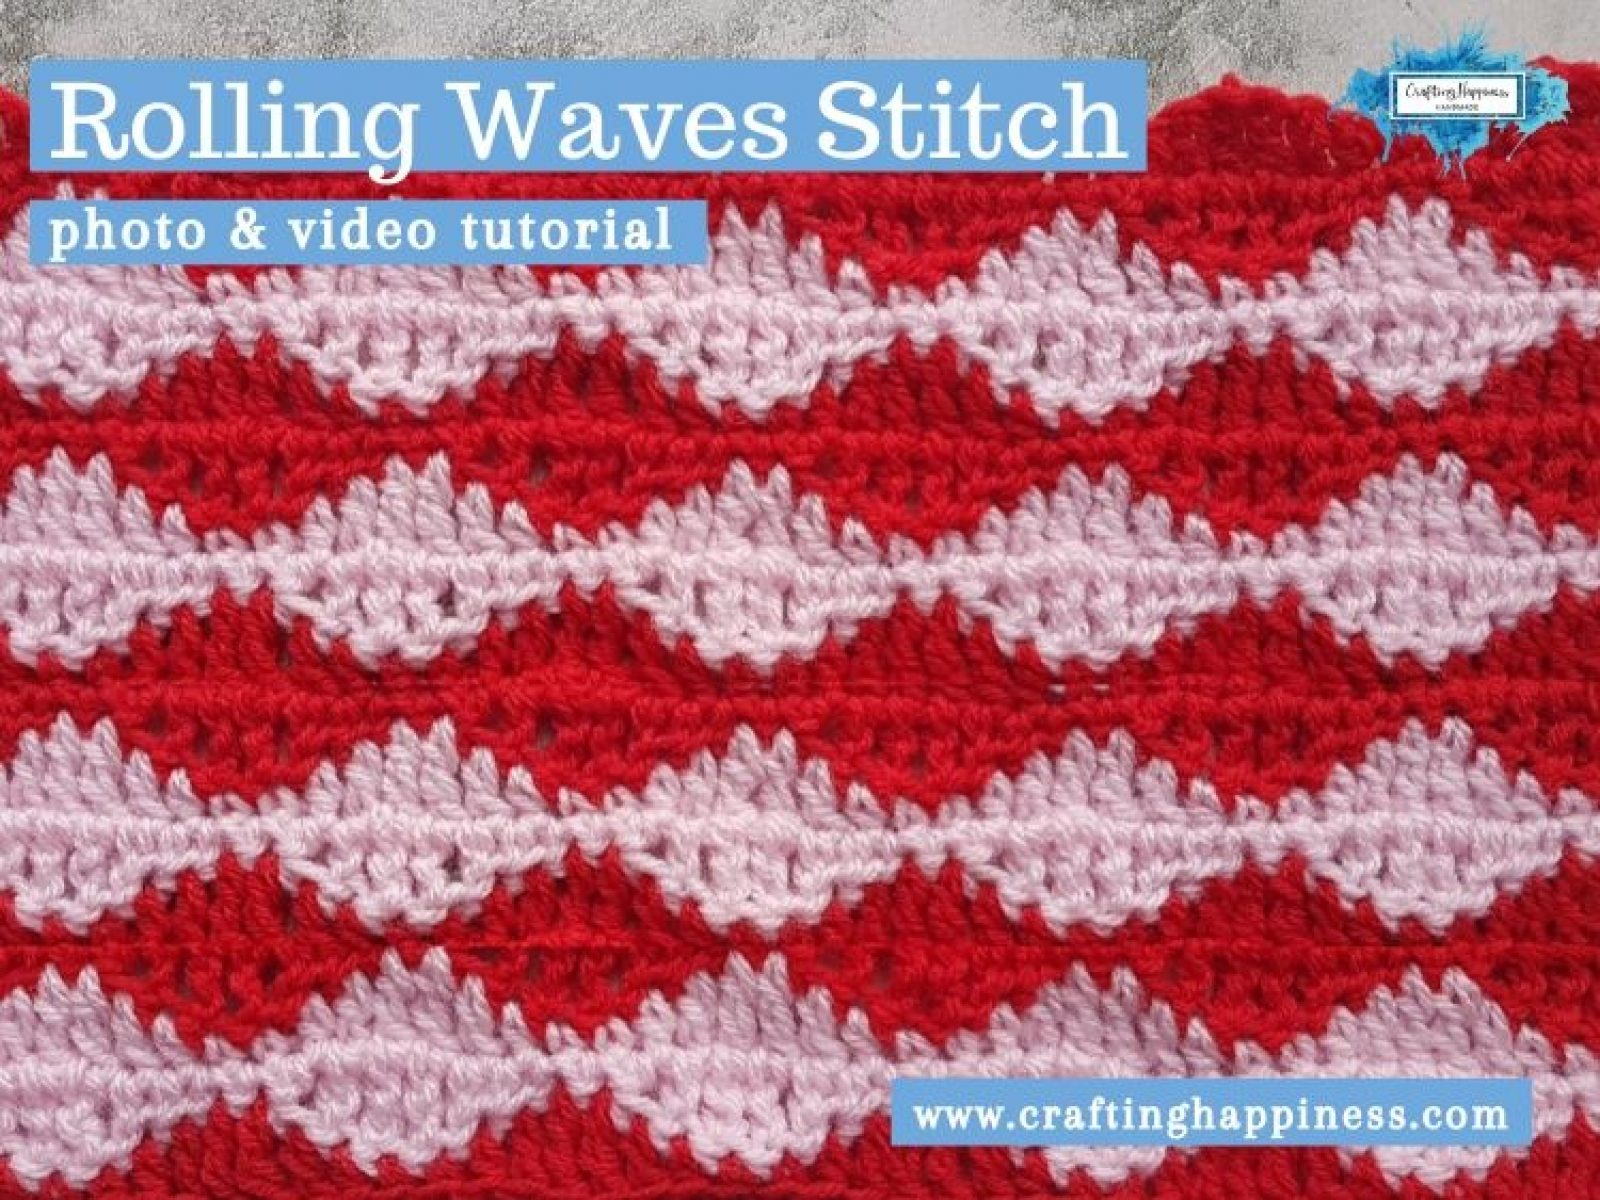 Rolling Waves Stitch by Crafting Happiness FACEBOOK POSTER